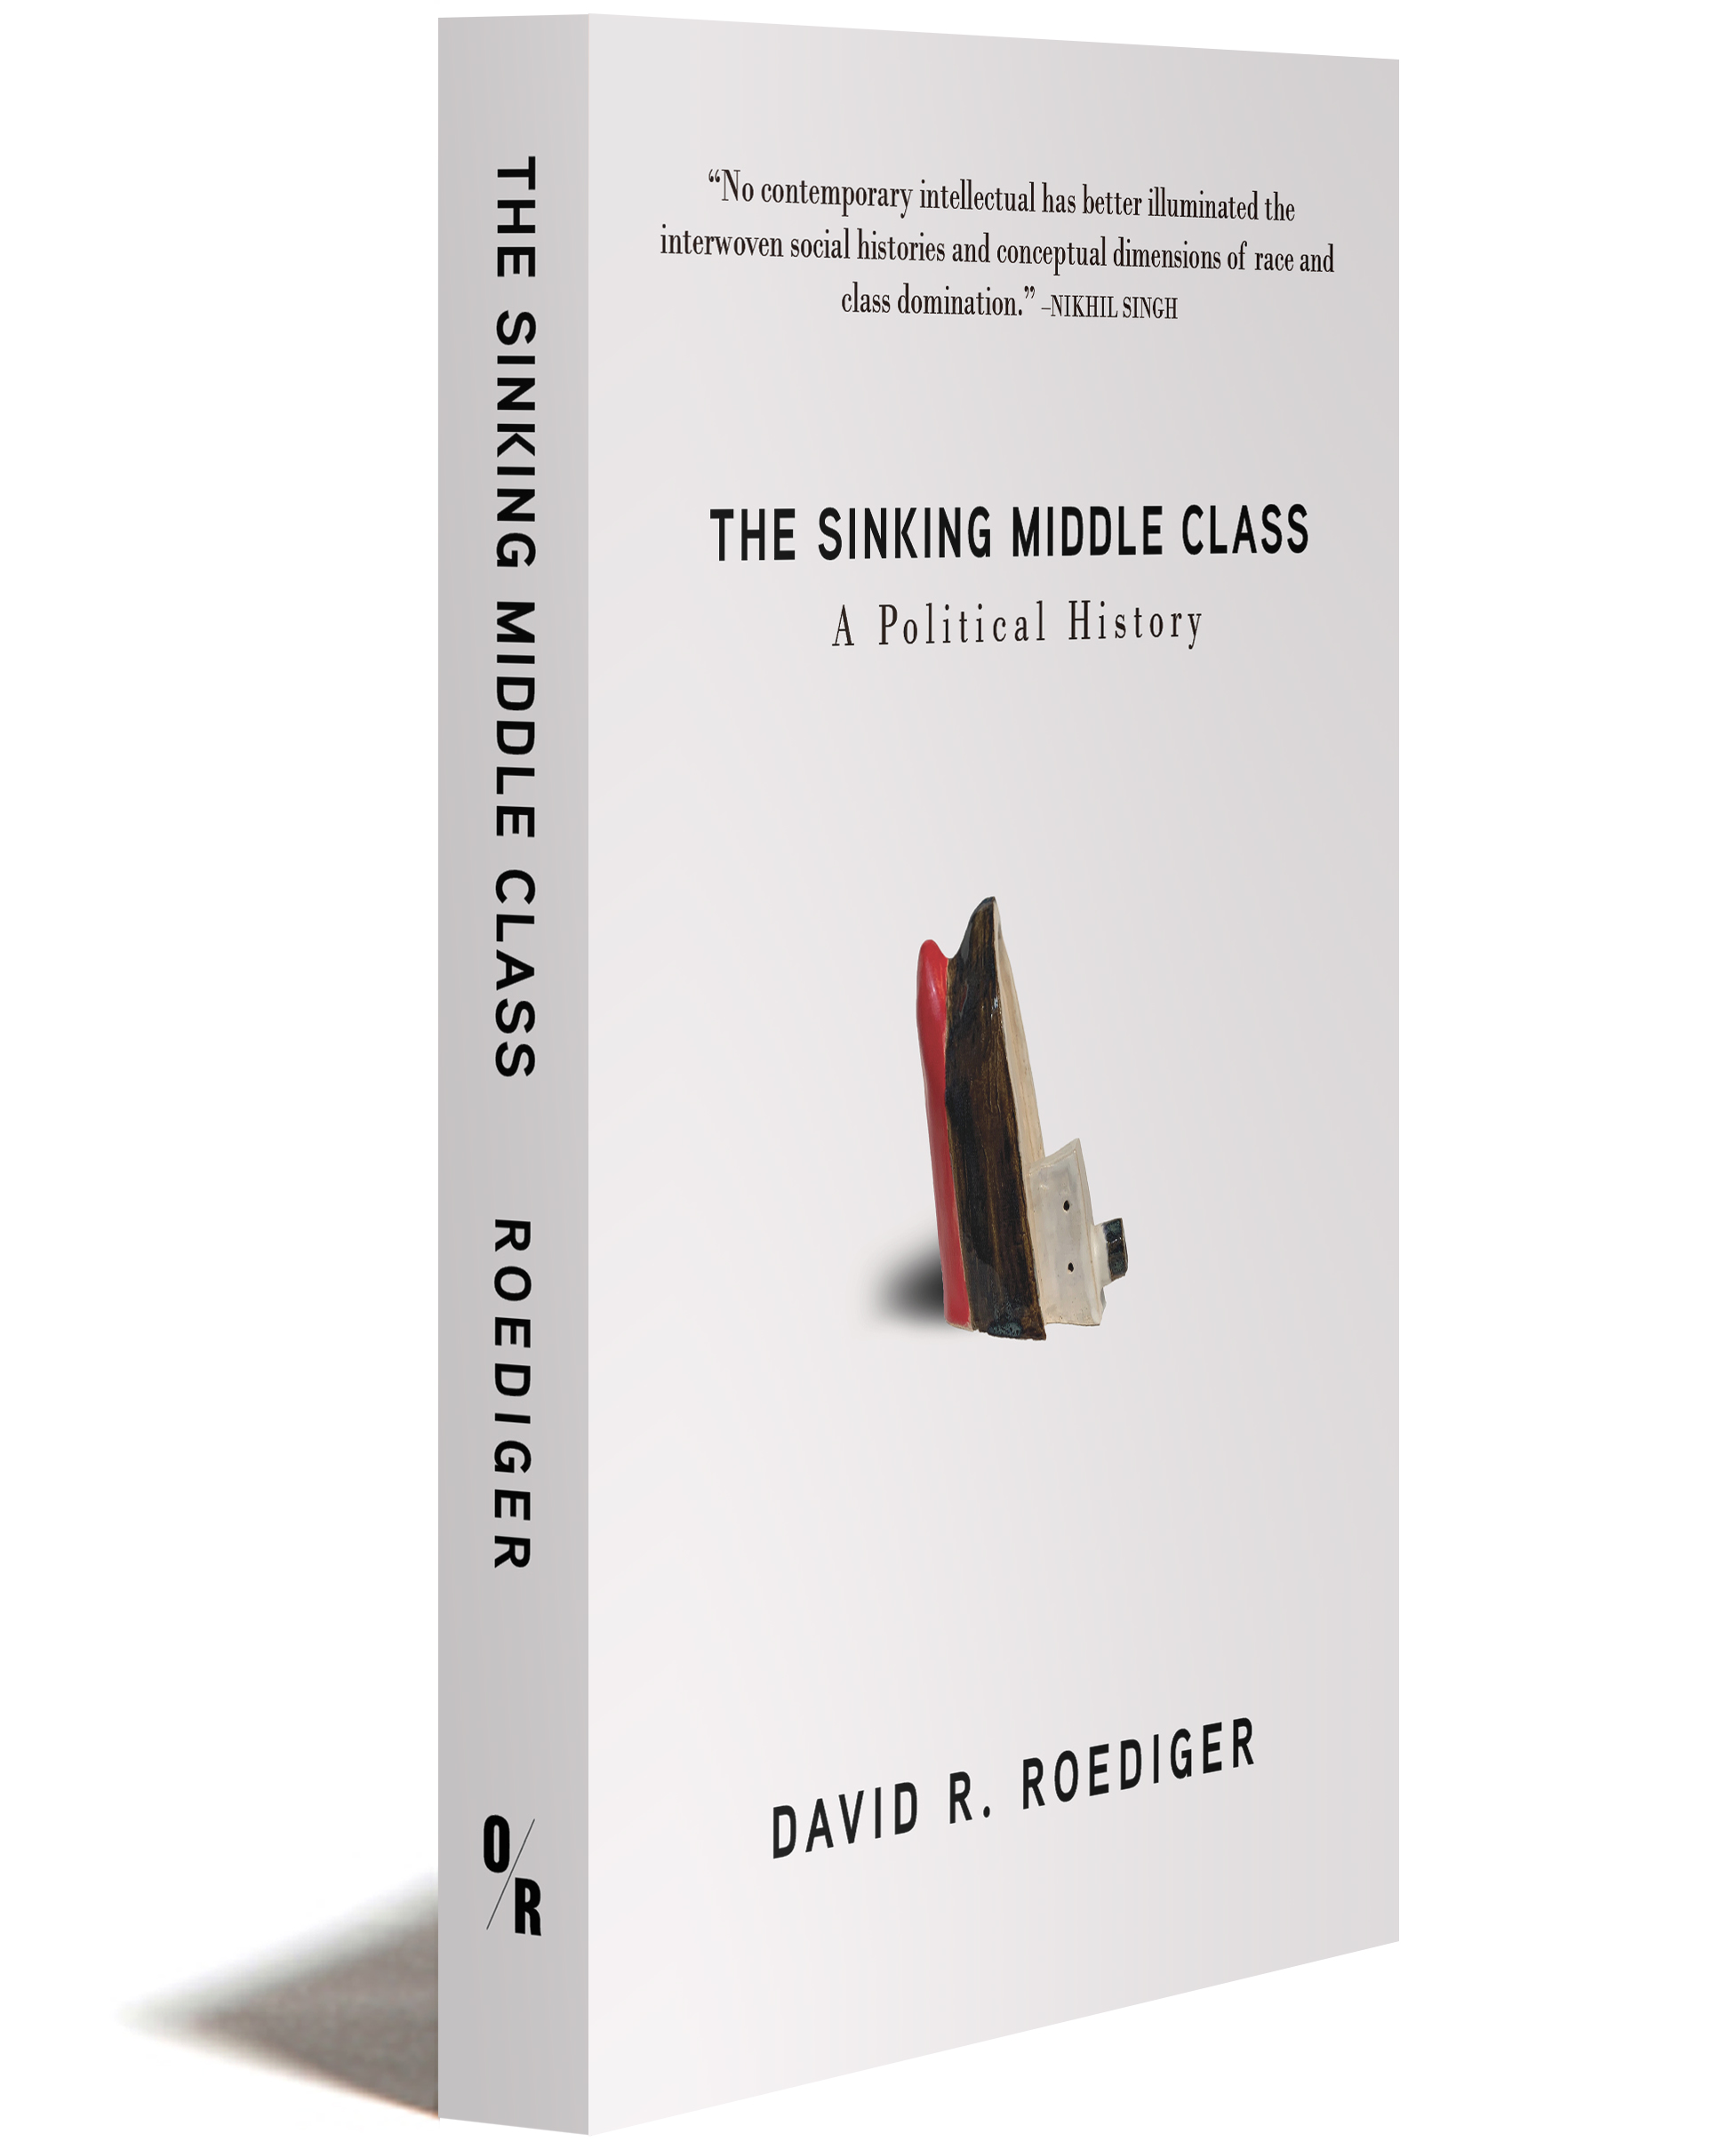 The sinking middleclass cover